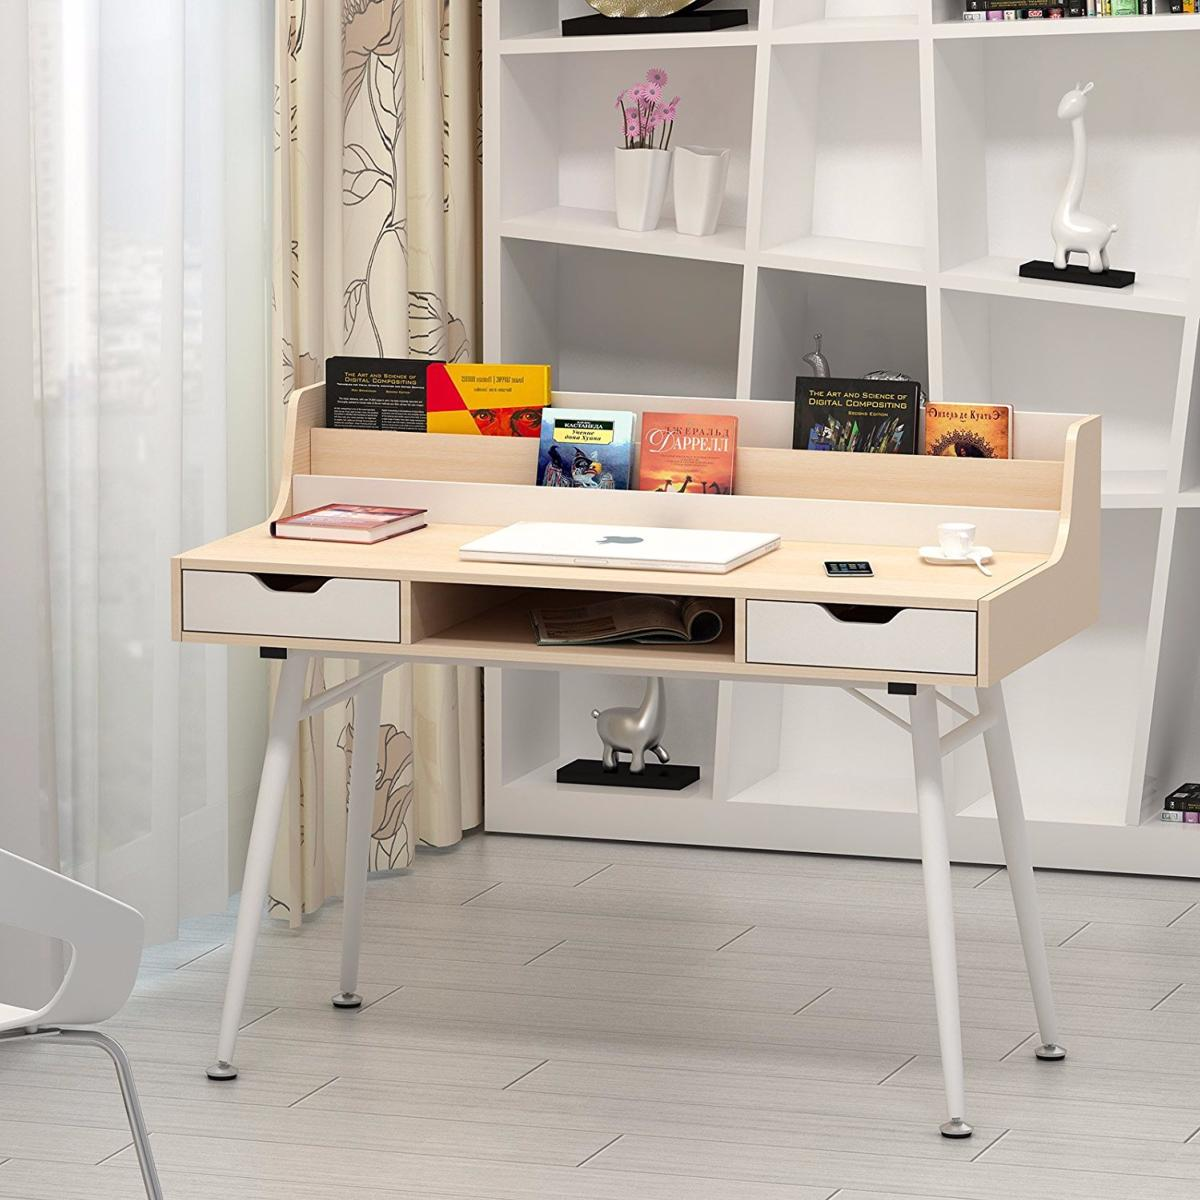 Bureau informatique design h tre cielterre commerce for Bureau hetre